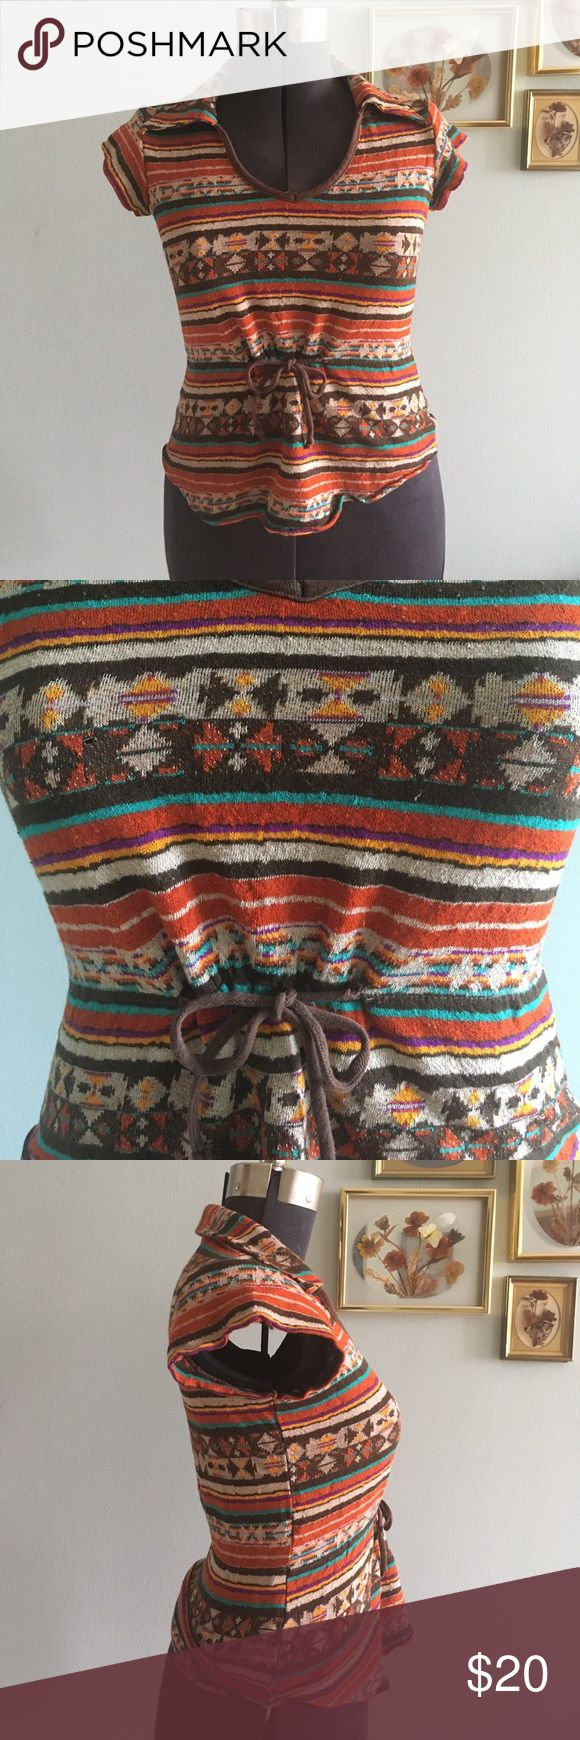 🍫 VINTAGE 70s collared Mister Marty Aztec shirt Adorable Mister Marty raging 70s shirt, cute collar and partial tie on the waist. Some pulling in fabric, but overall good shape! S/M Vintage Tops Blouses